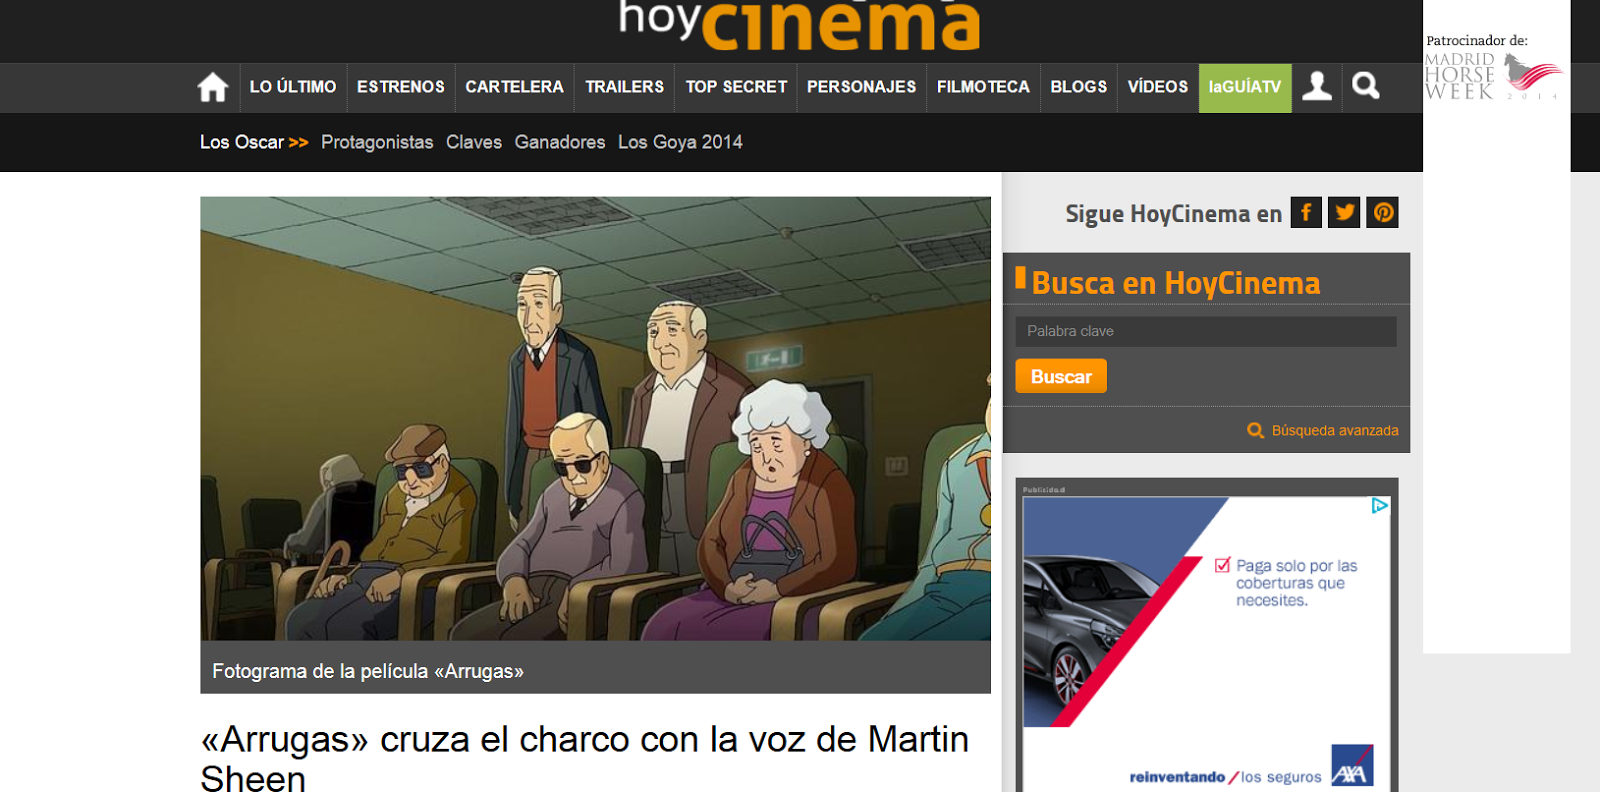 http://hoycinema.abc.es/noticias/20140627/abci-arrugas-estrenos-miami-estados-201406272000.html